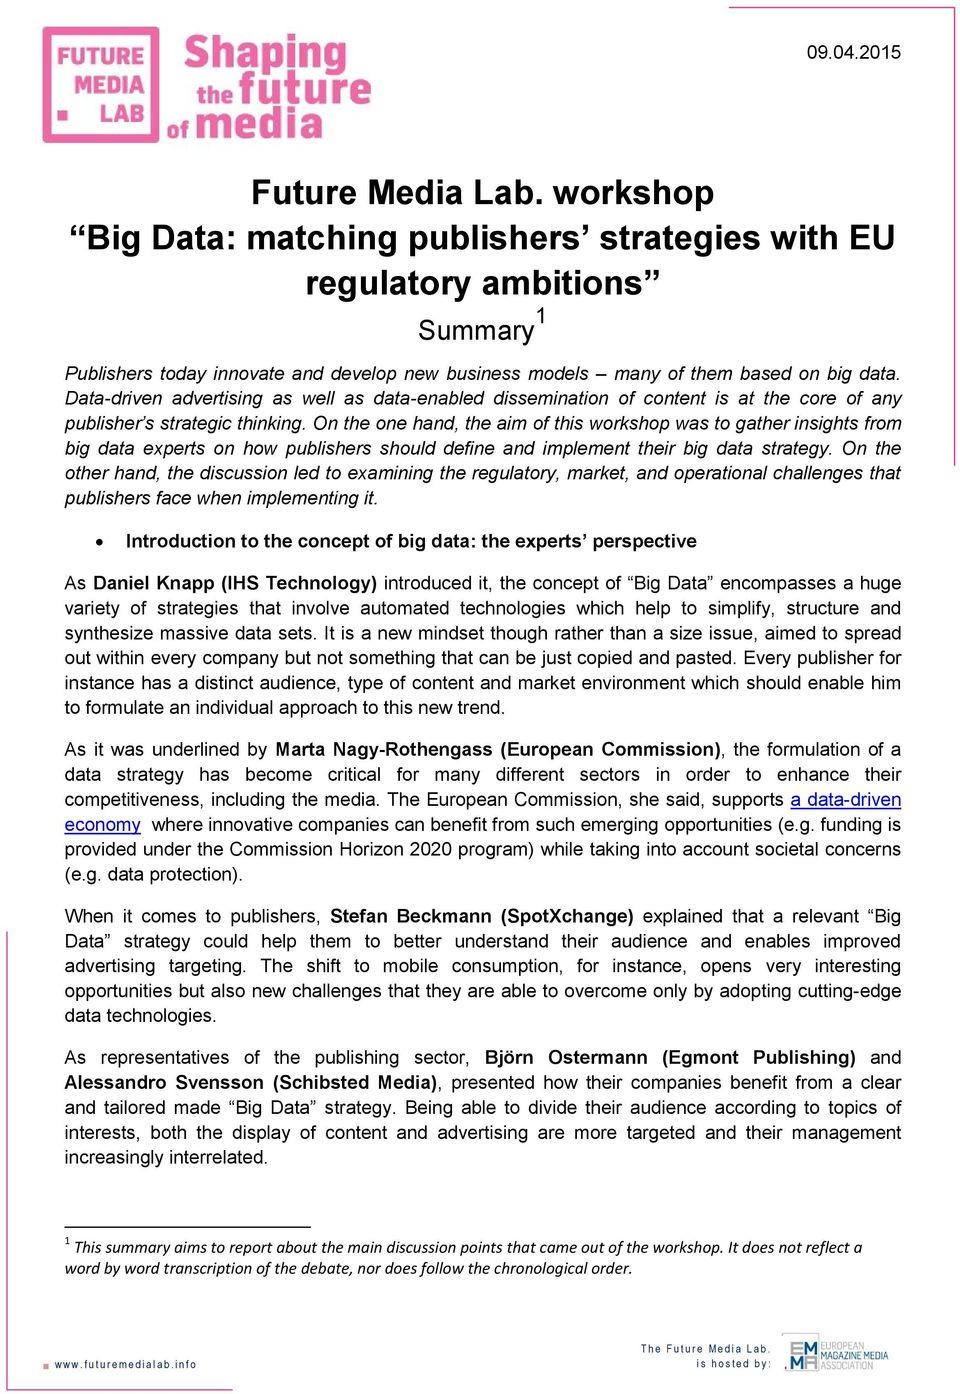 On the one hand, the aim of this workshop was to gather insights from big data experts on how publishers should define and implement their big data strategy.